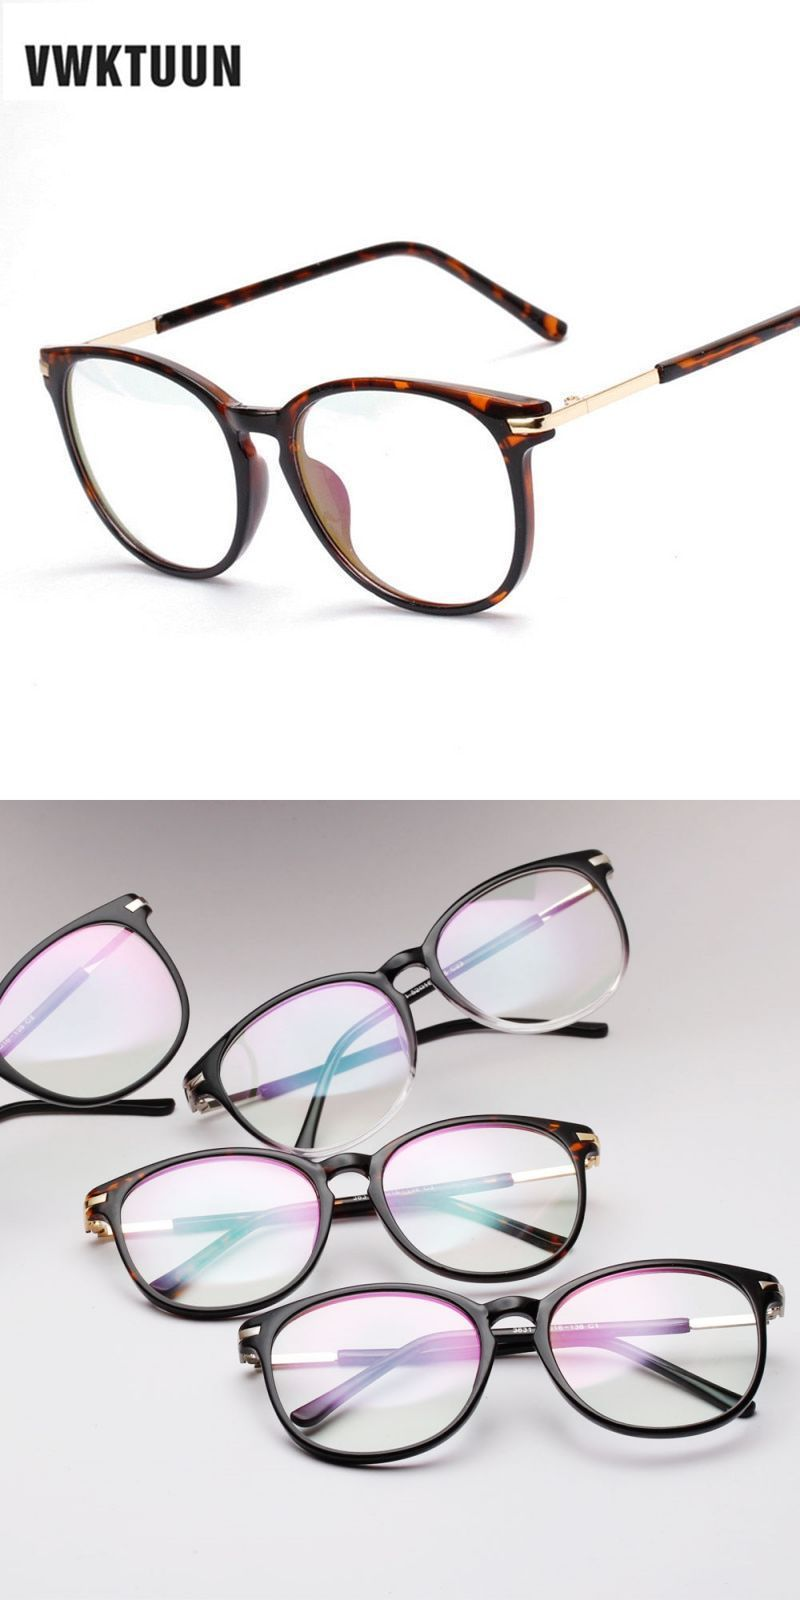 8e23d65bf9a8 Fashion oversized glasses frame women men eyeglasses optical glasses frame  vintage eyeglass frames female fake glasses